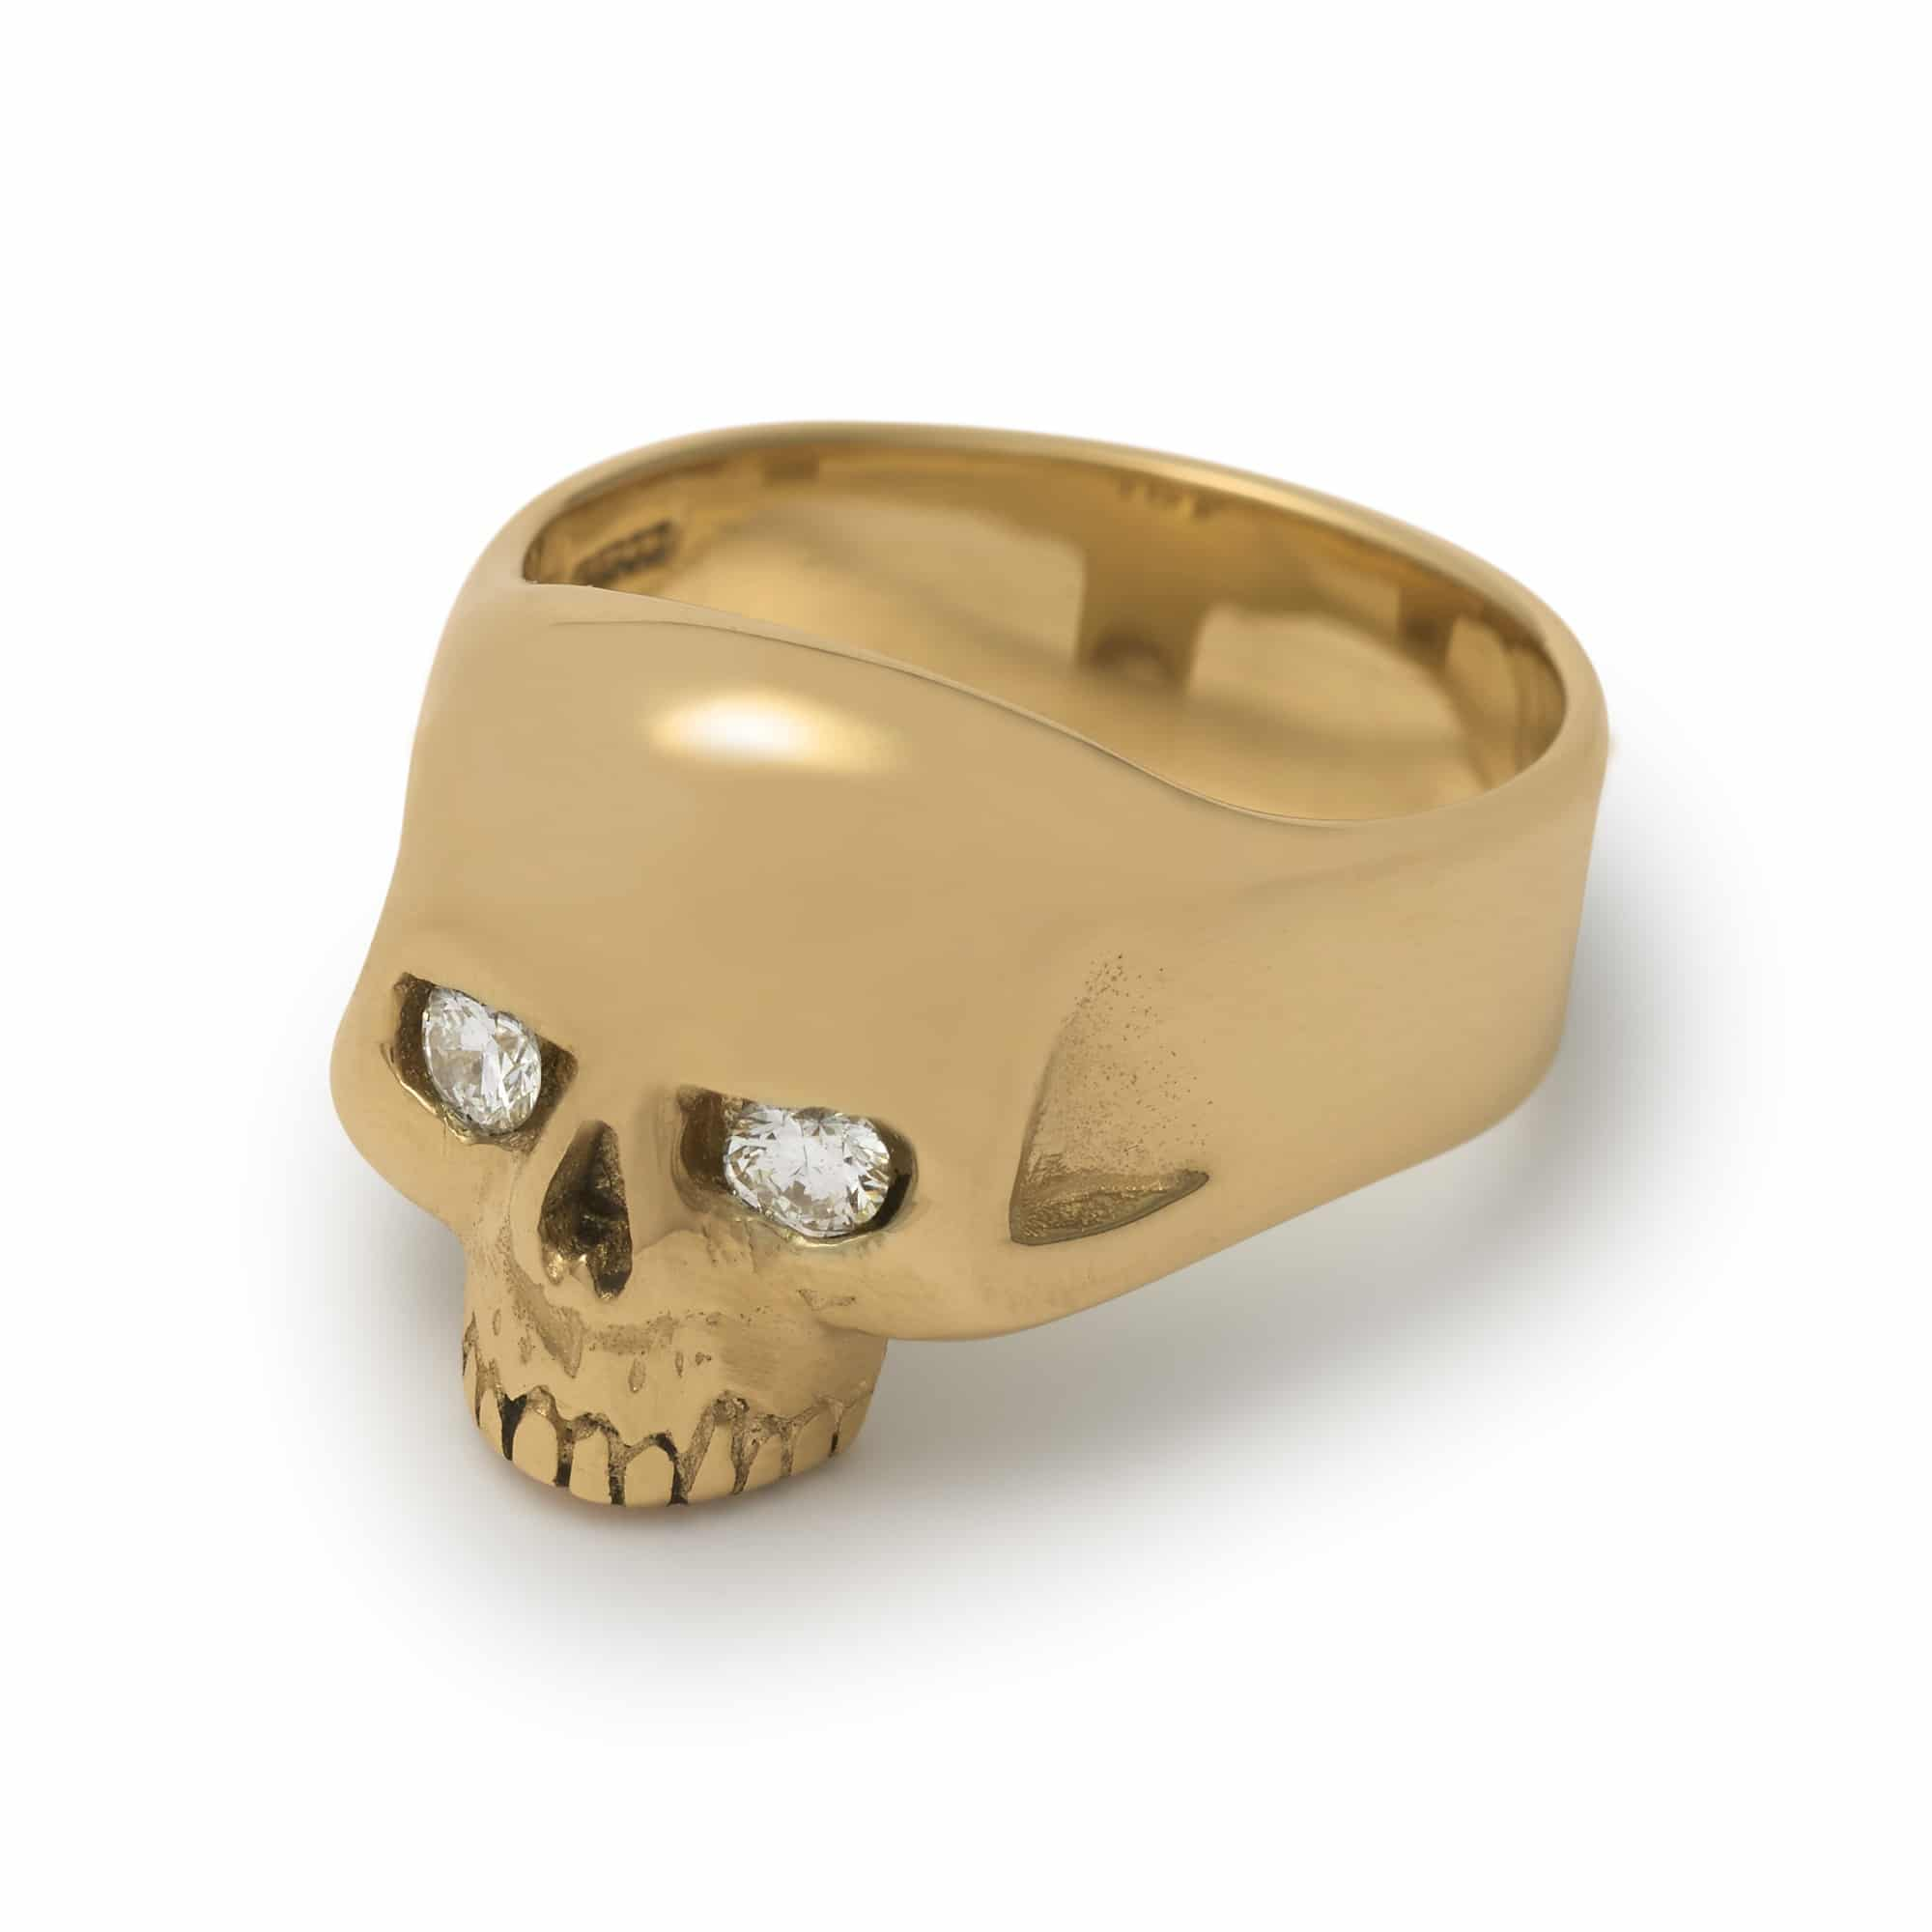 gold smallest evil skull ring with diamonds the great frog